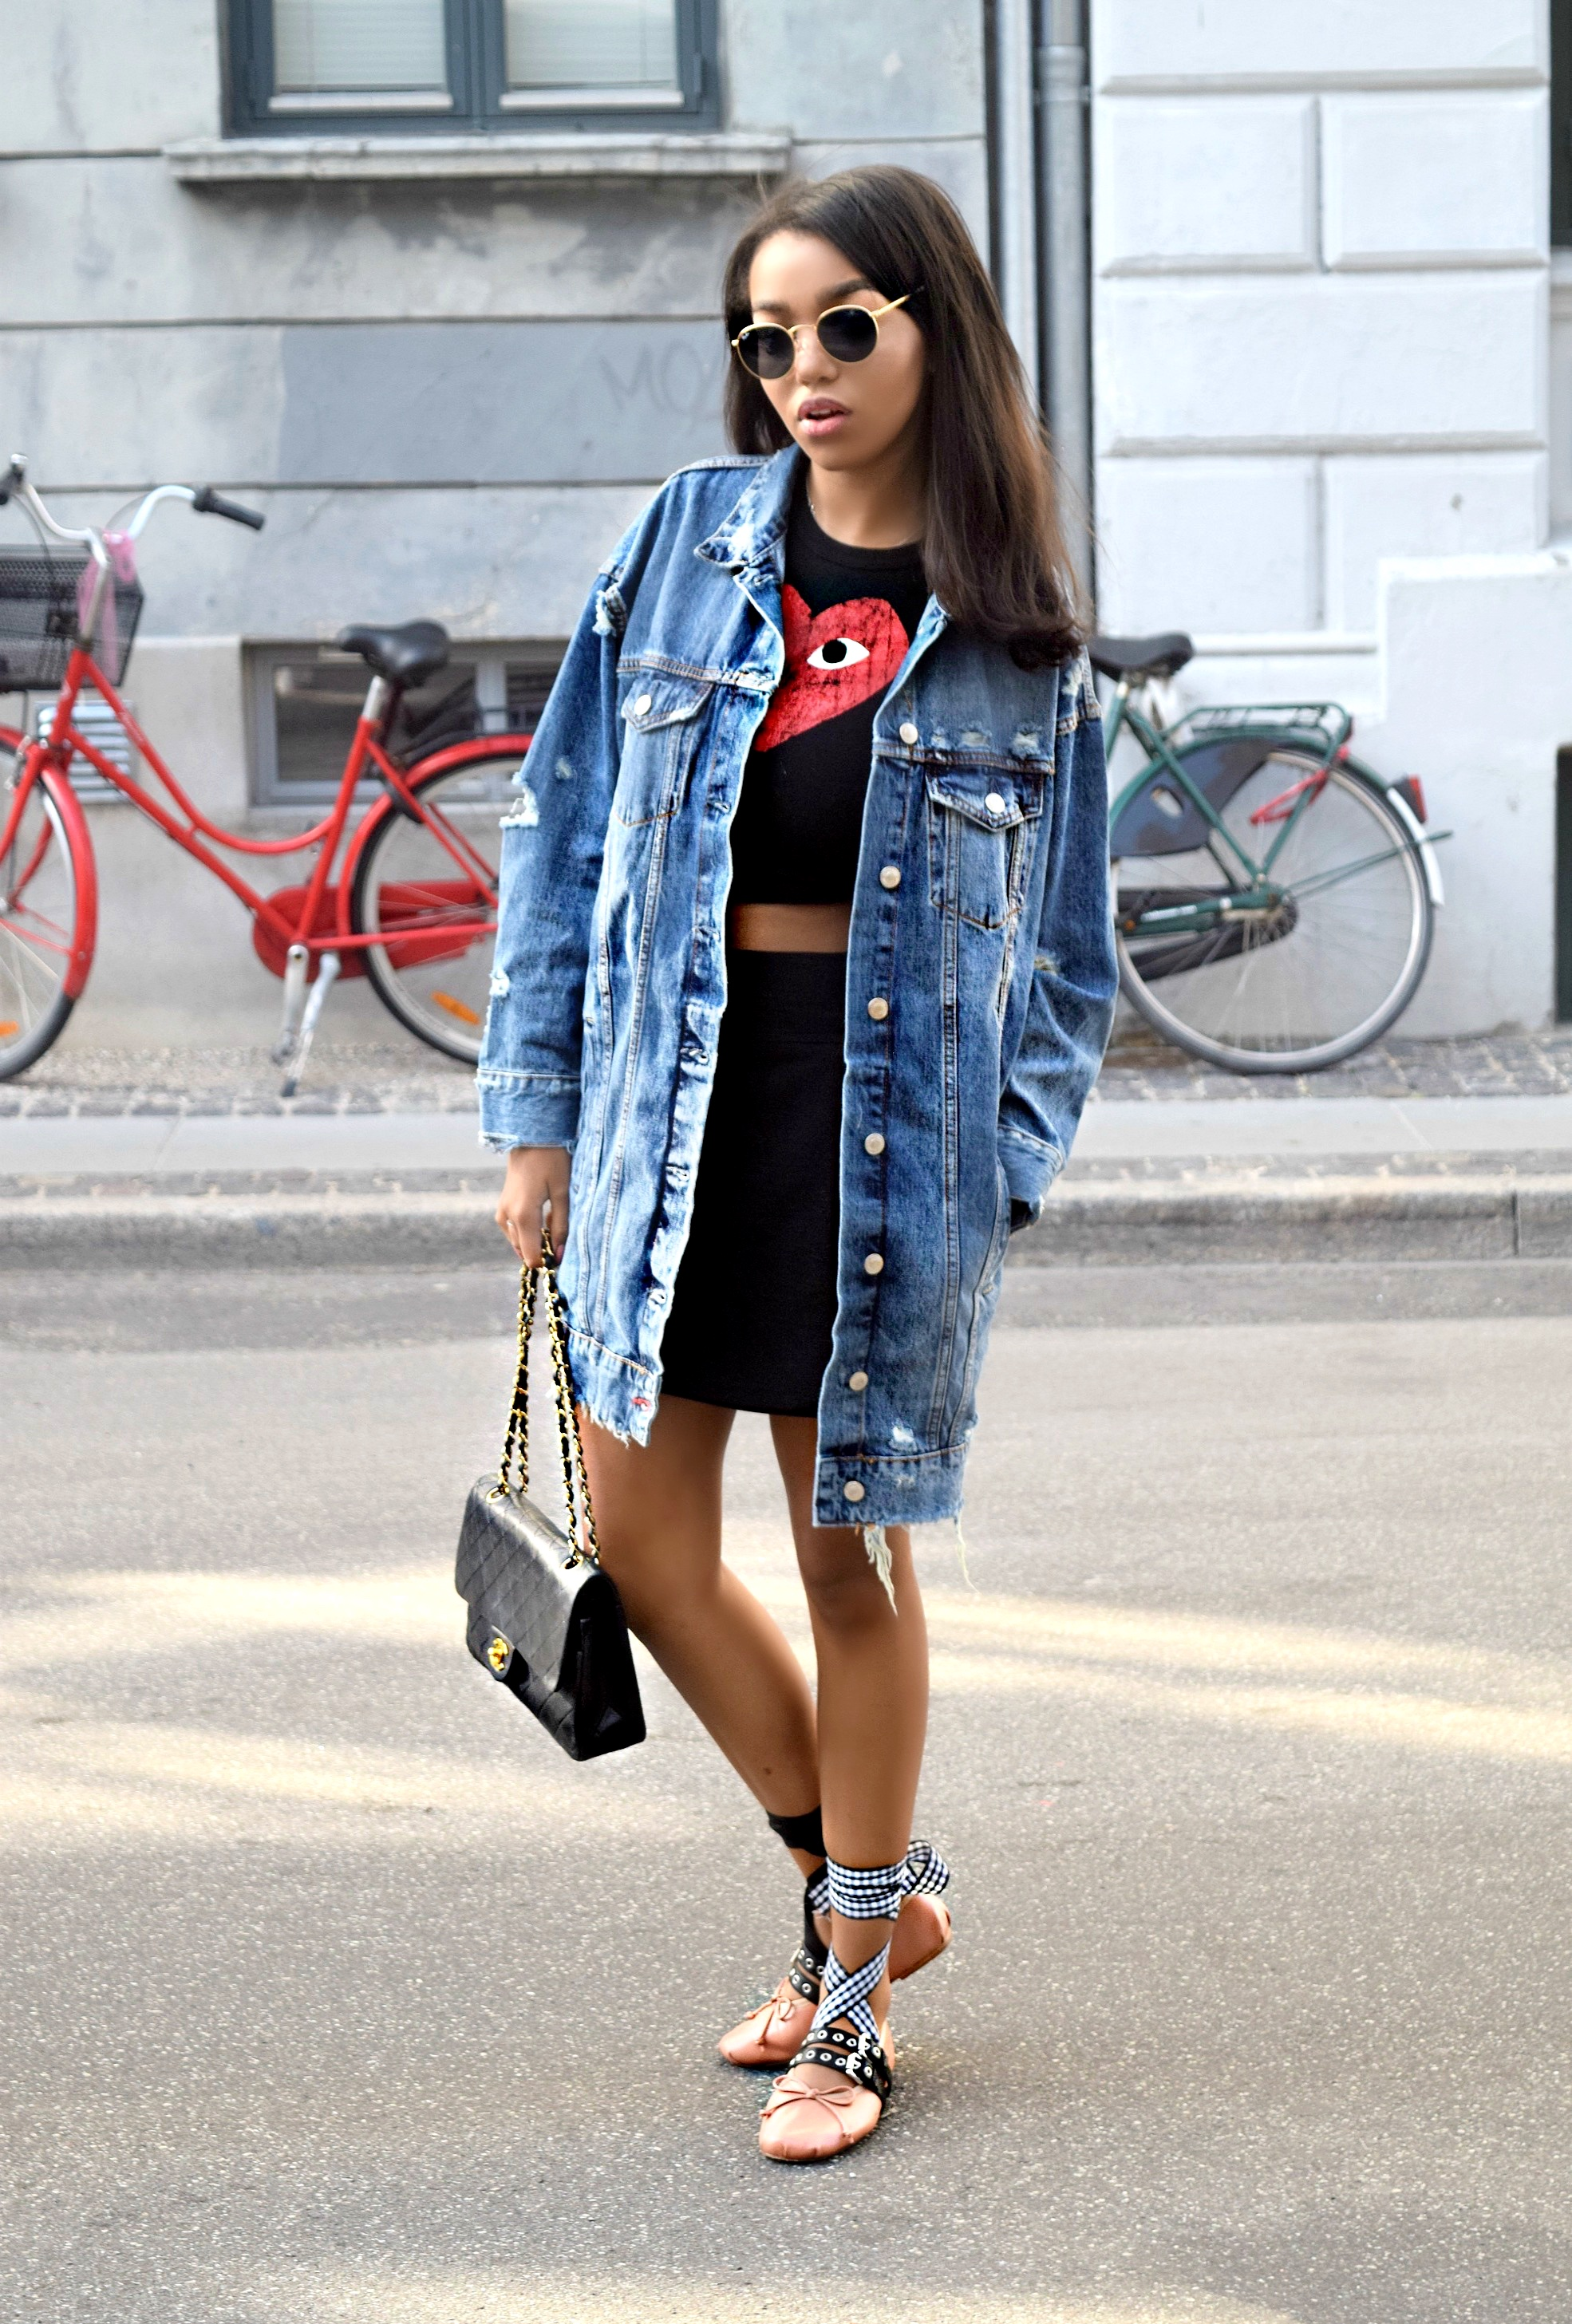 Copenhagen Denmark // Chanel Flap Bag // Los Angeles Fashion Blogger Daphne Blunt // Commes Des Garcons // Denim Zara // Miu Miu Ballet Ballerina Flats: To Style, With Love